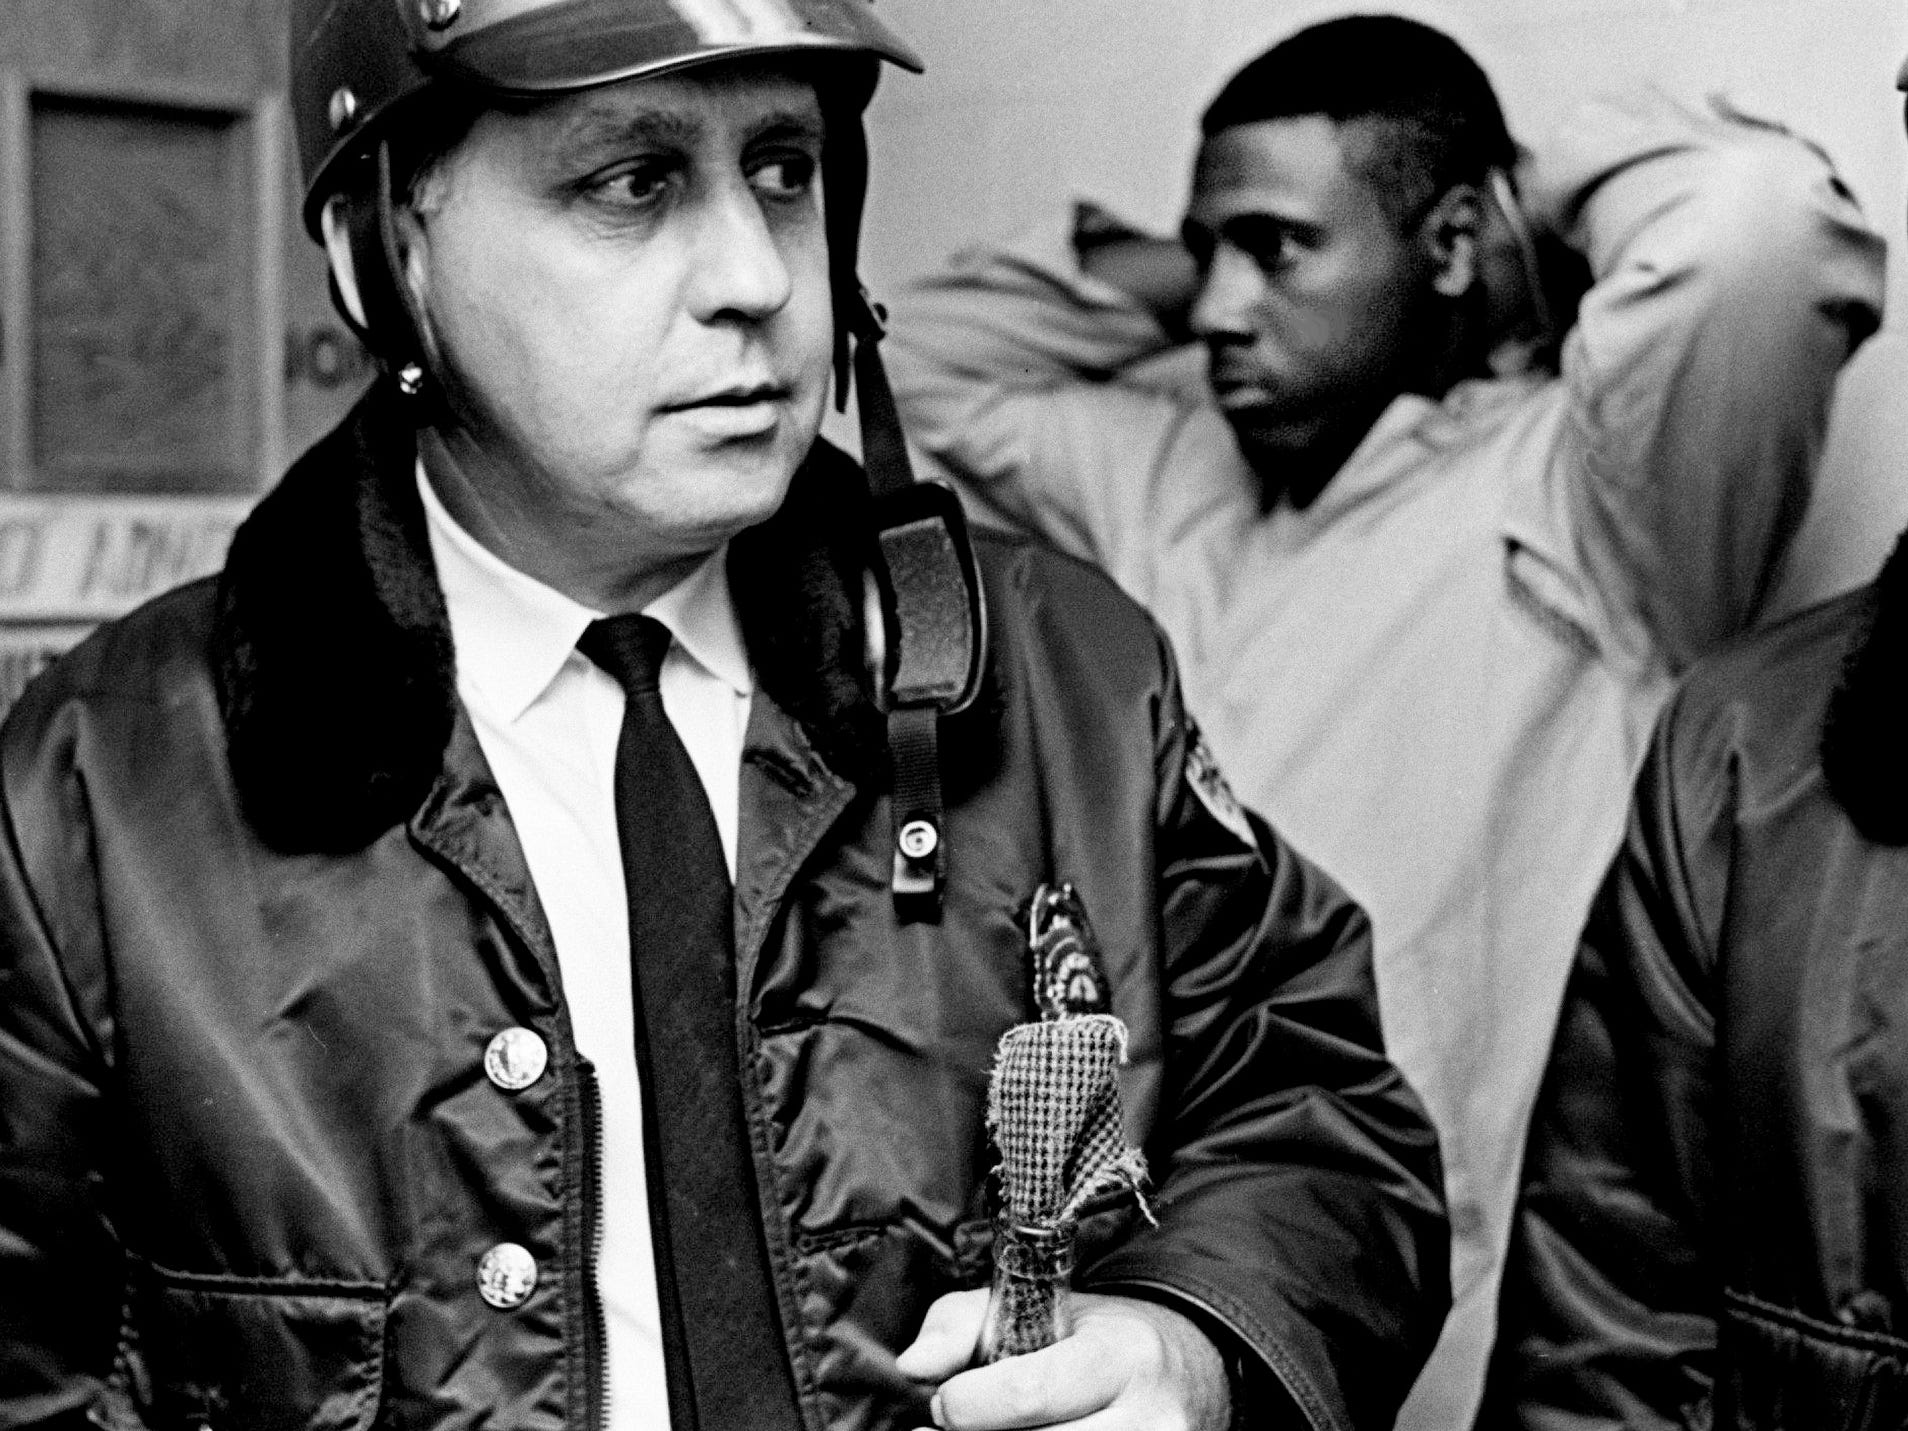 A Metro police officer holds one of the Molotov cocktails confiscated from six men who were taken into custody at 14th Avenue and Himes Street just hours after the Rev. Martin Luther King Jr. was slain in Memphis on April 4, 1968.